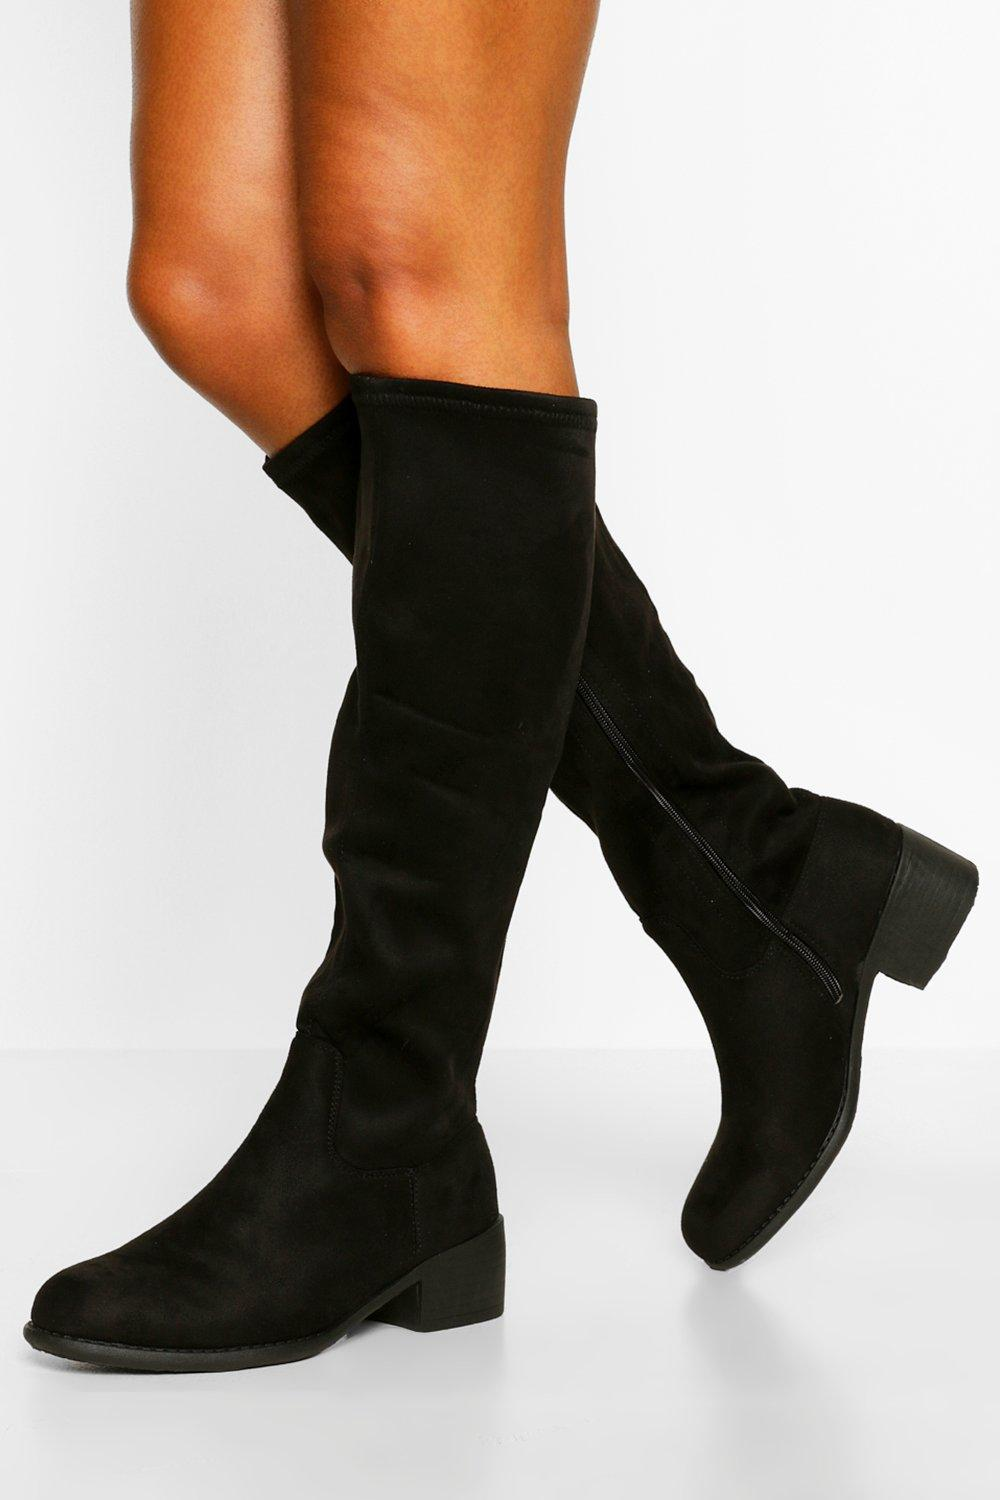 Vintage Boots, Retro Boots Womens Wide Fit Flat Knee High Boot - Black - 10 $34.00 AT vintagedancer.com